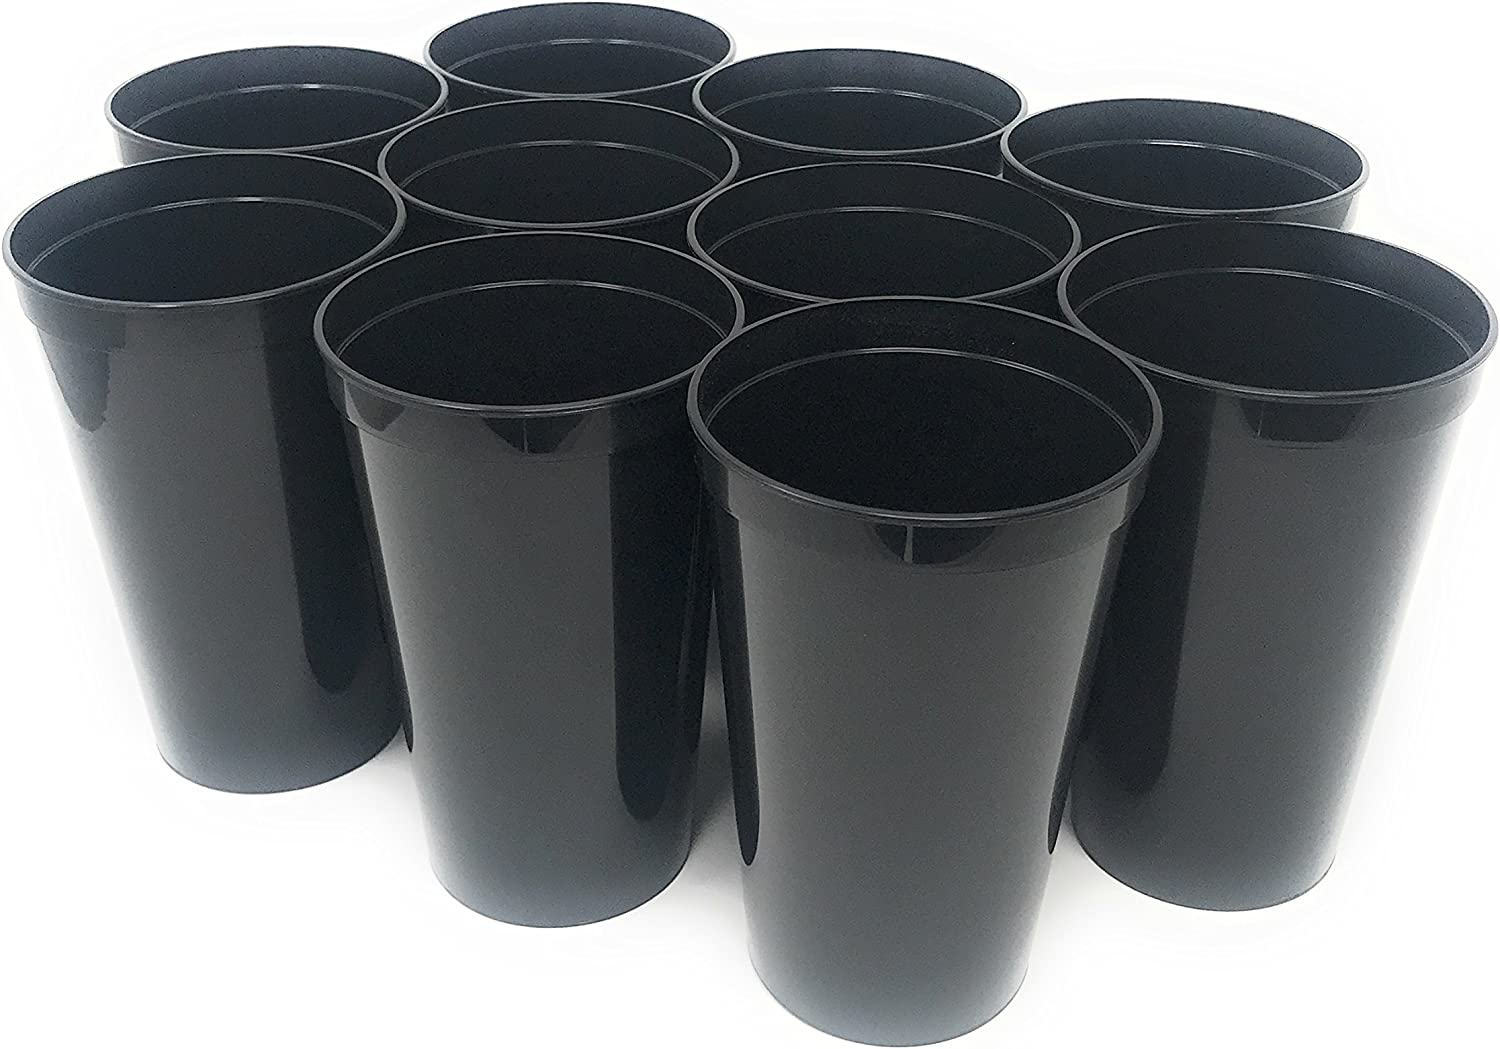 CSBD Stadium 22 oz. Plastic Cups, 10 Pack, Blank Reusable Drink Tumblers for Parties, Events, Marketing, Weddings, DIY Projects or BBQ Picnics, No BPA (Black)